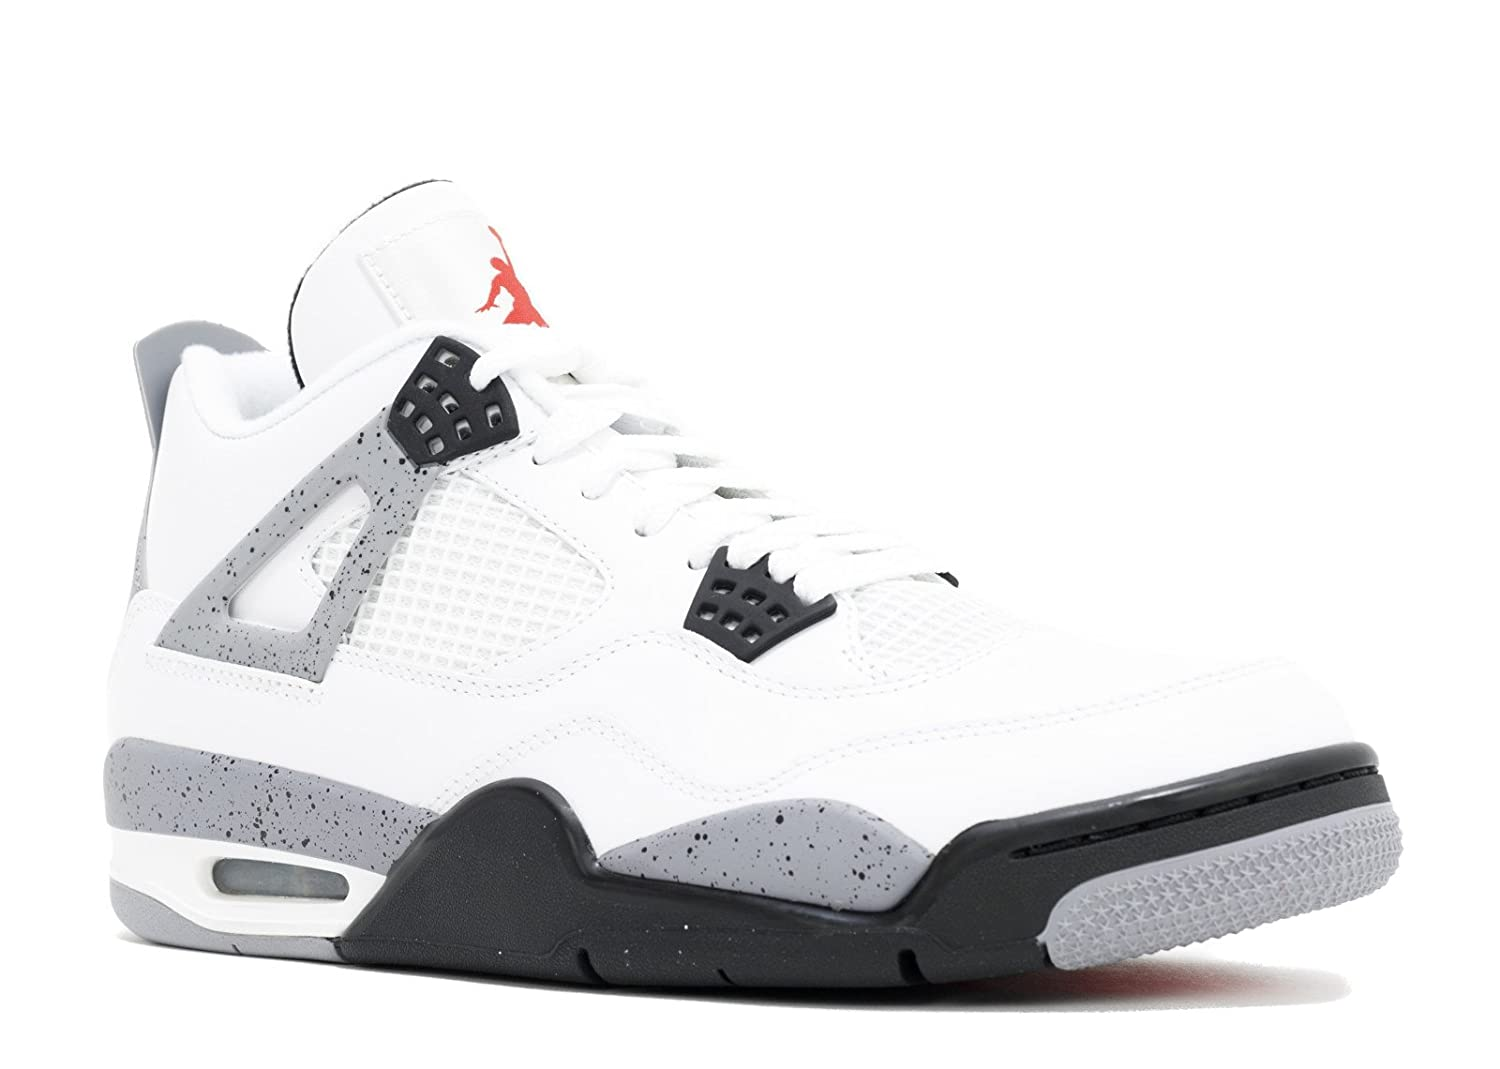 Nike Air Jordan 4 Retro White Cement (308497-103)